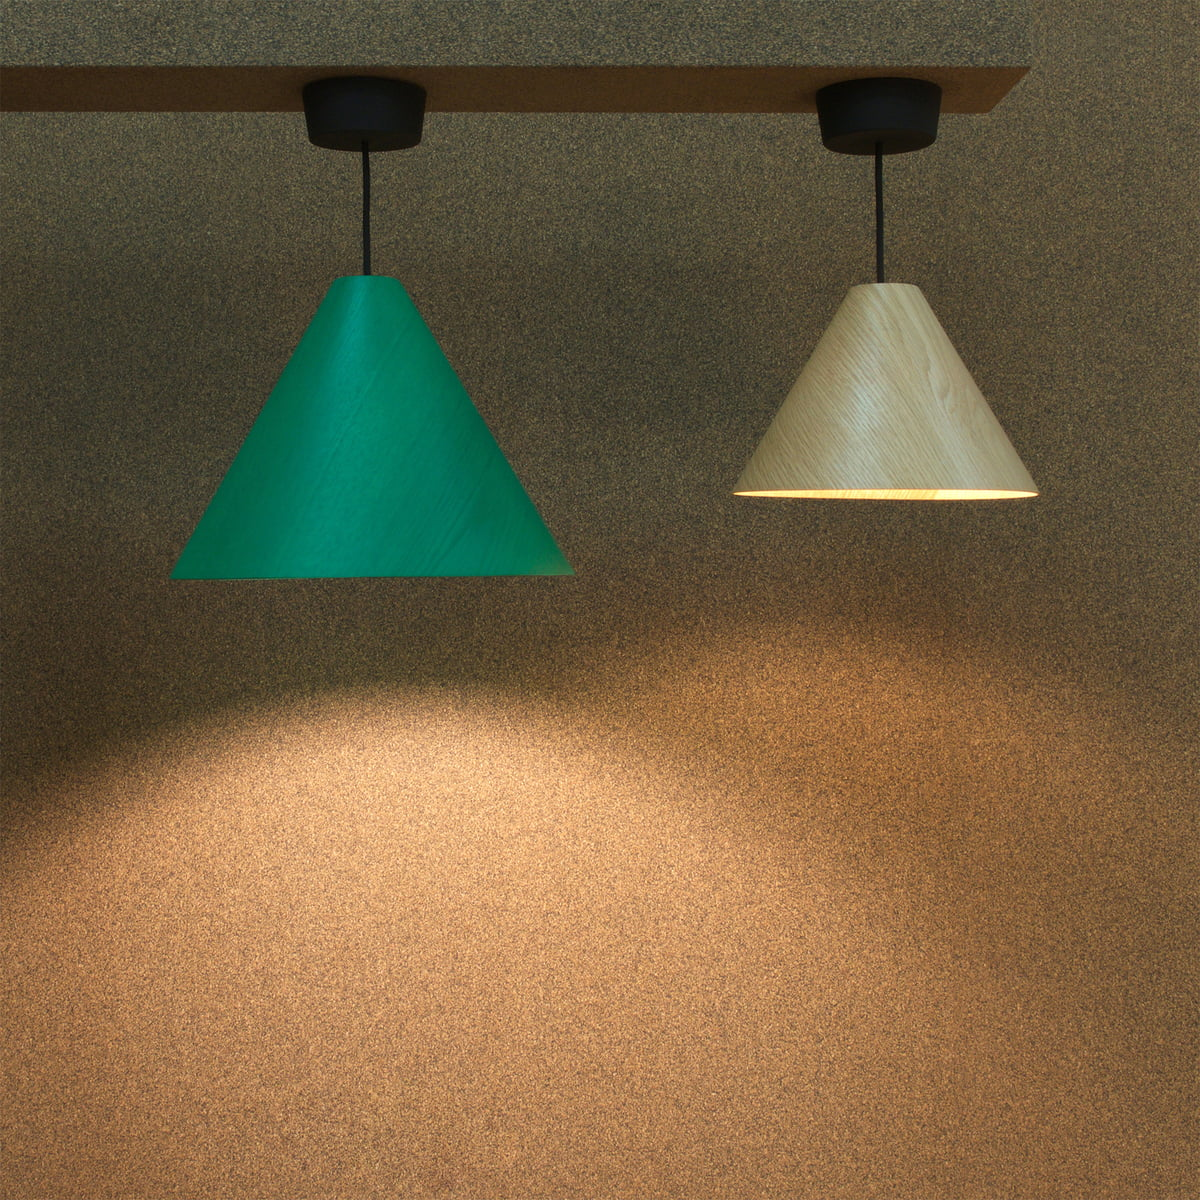 The 30 Degree Pendant Lamp By Wrong London